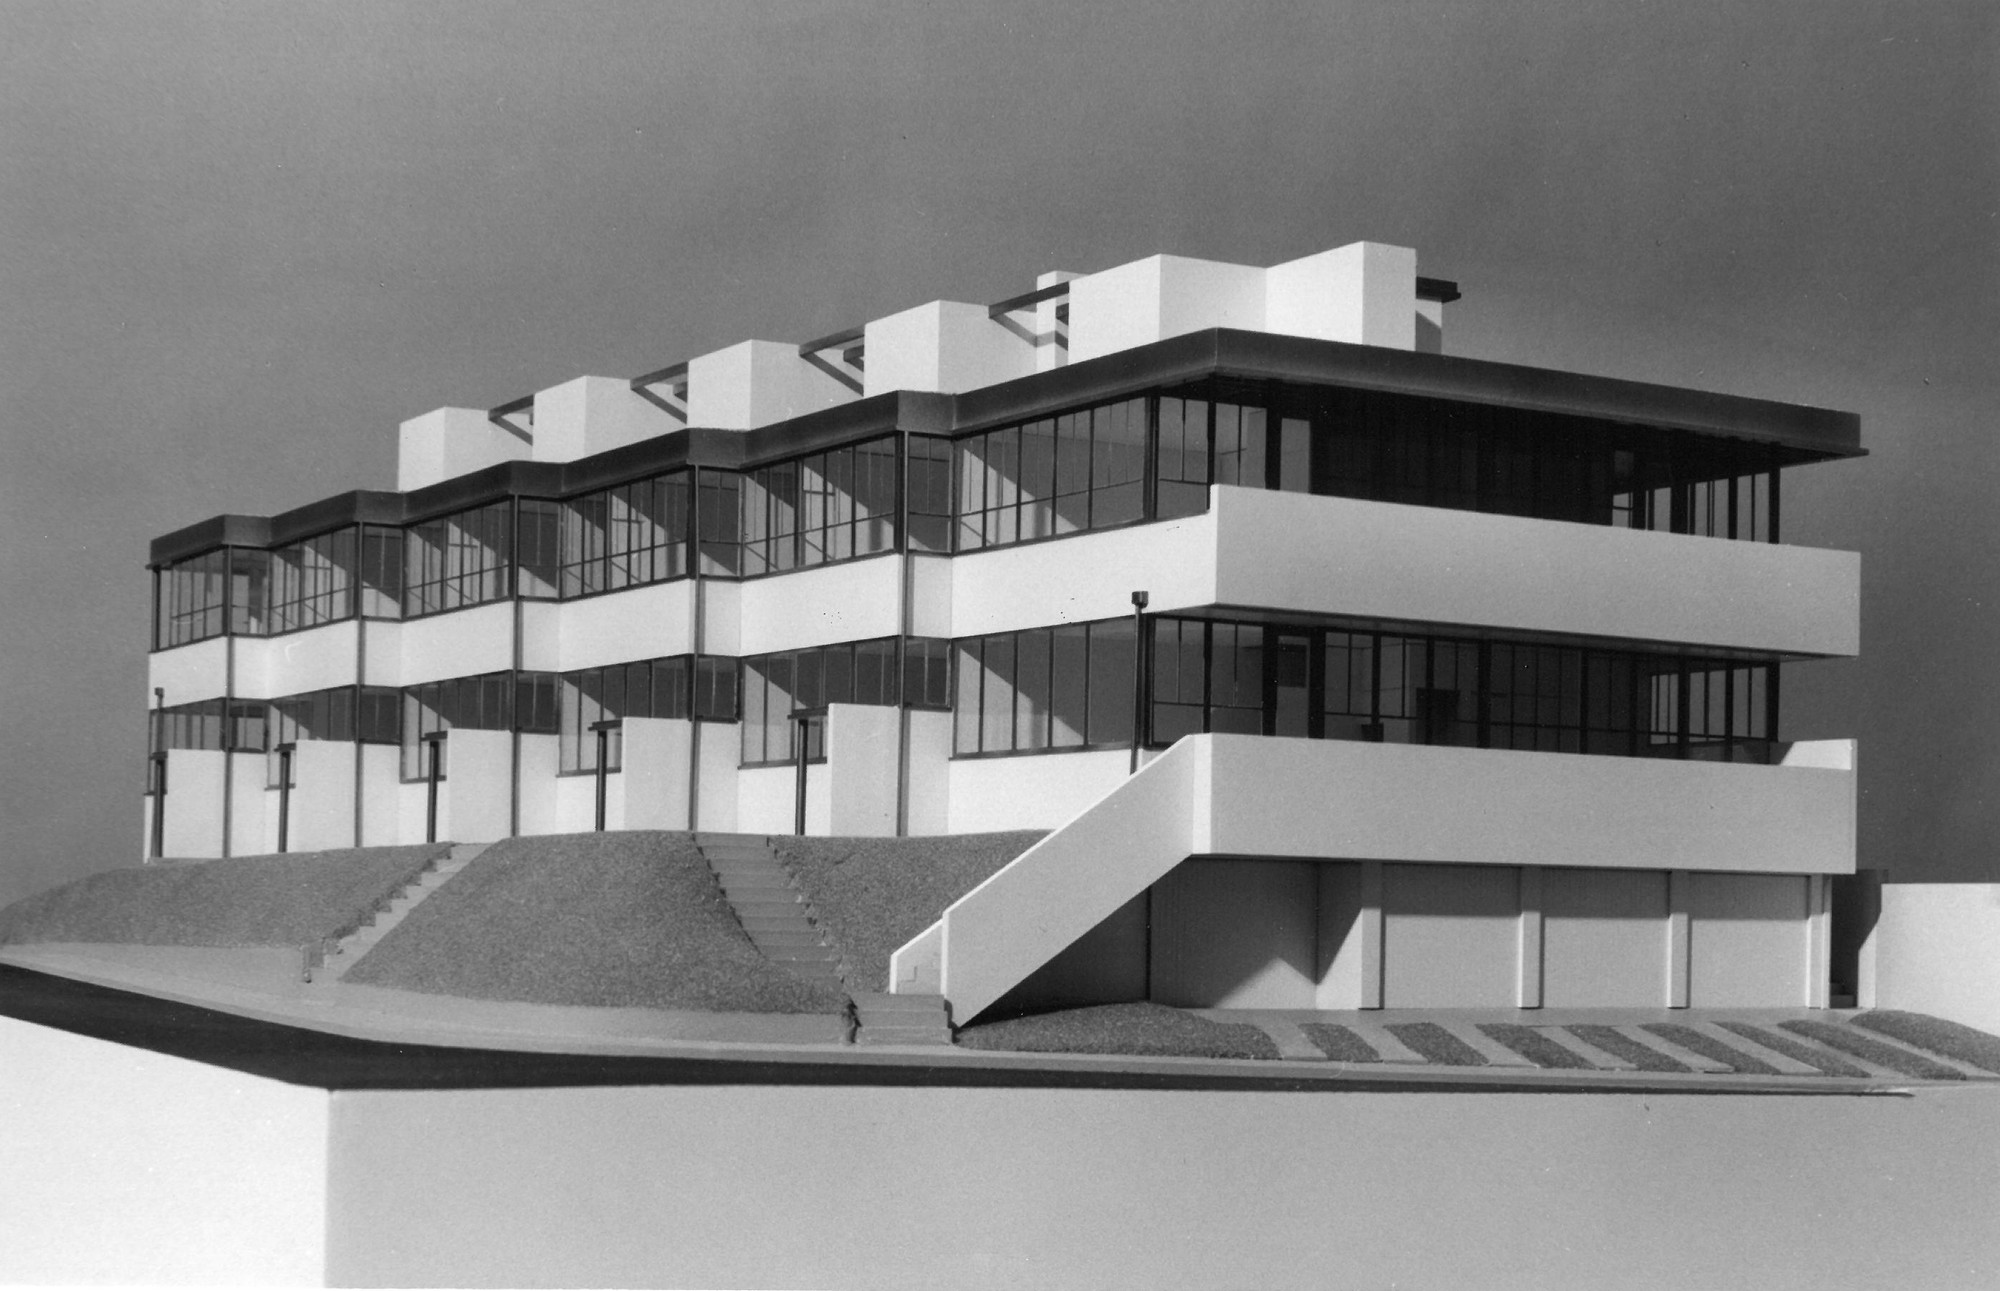 Richard Neutra. Landfair Apartments, Westwood, Los Angeles, CA. 1937